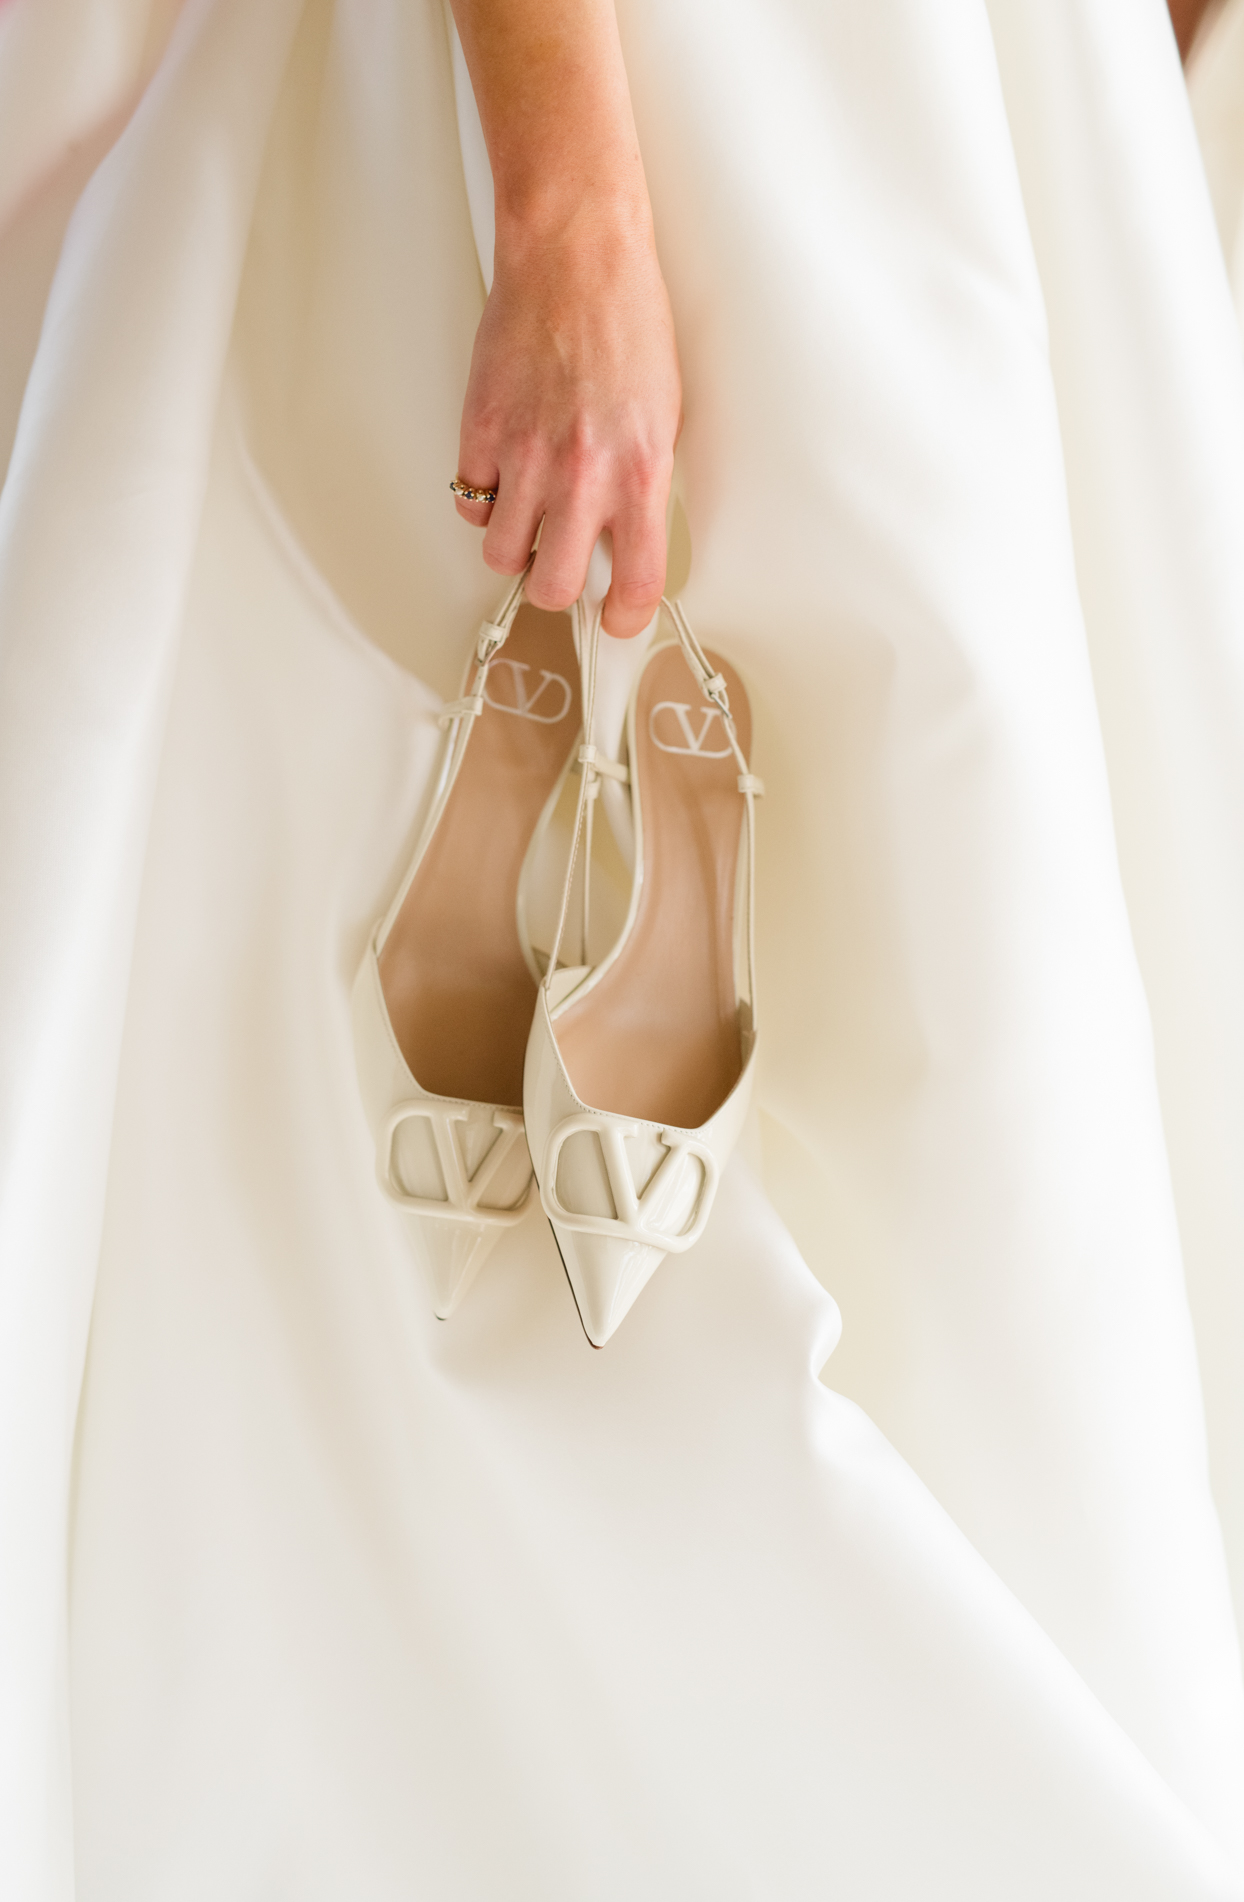 bride carrying white wedding shoes